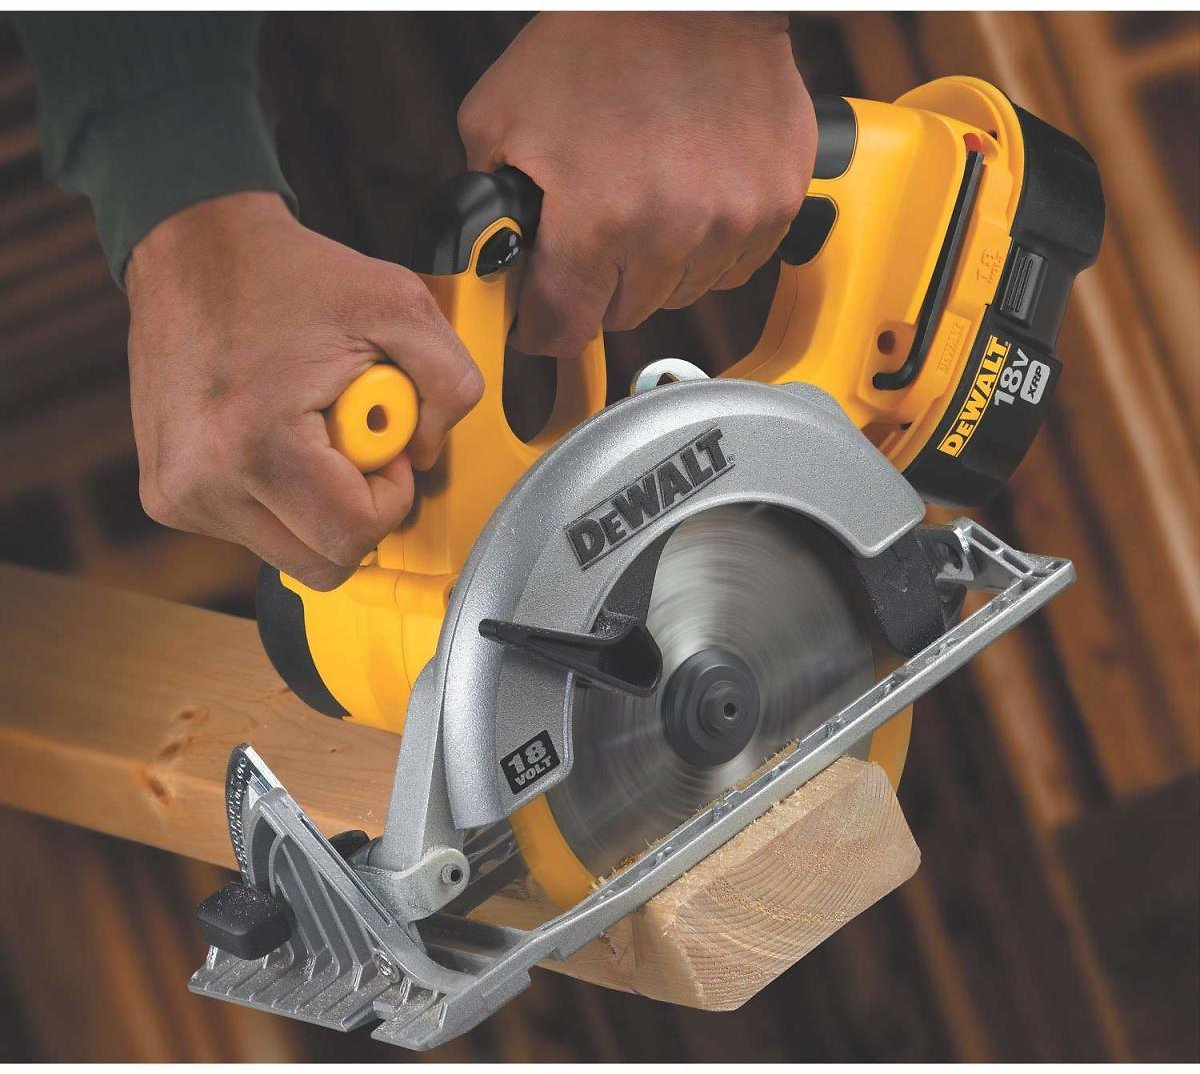 (Ships Free) DEWALT Bare-Tool DC390B 6-1/2-Inch 18-Volt Cordless Circular Saw (Tool Only, No Battery)